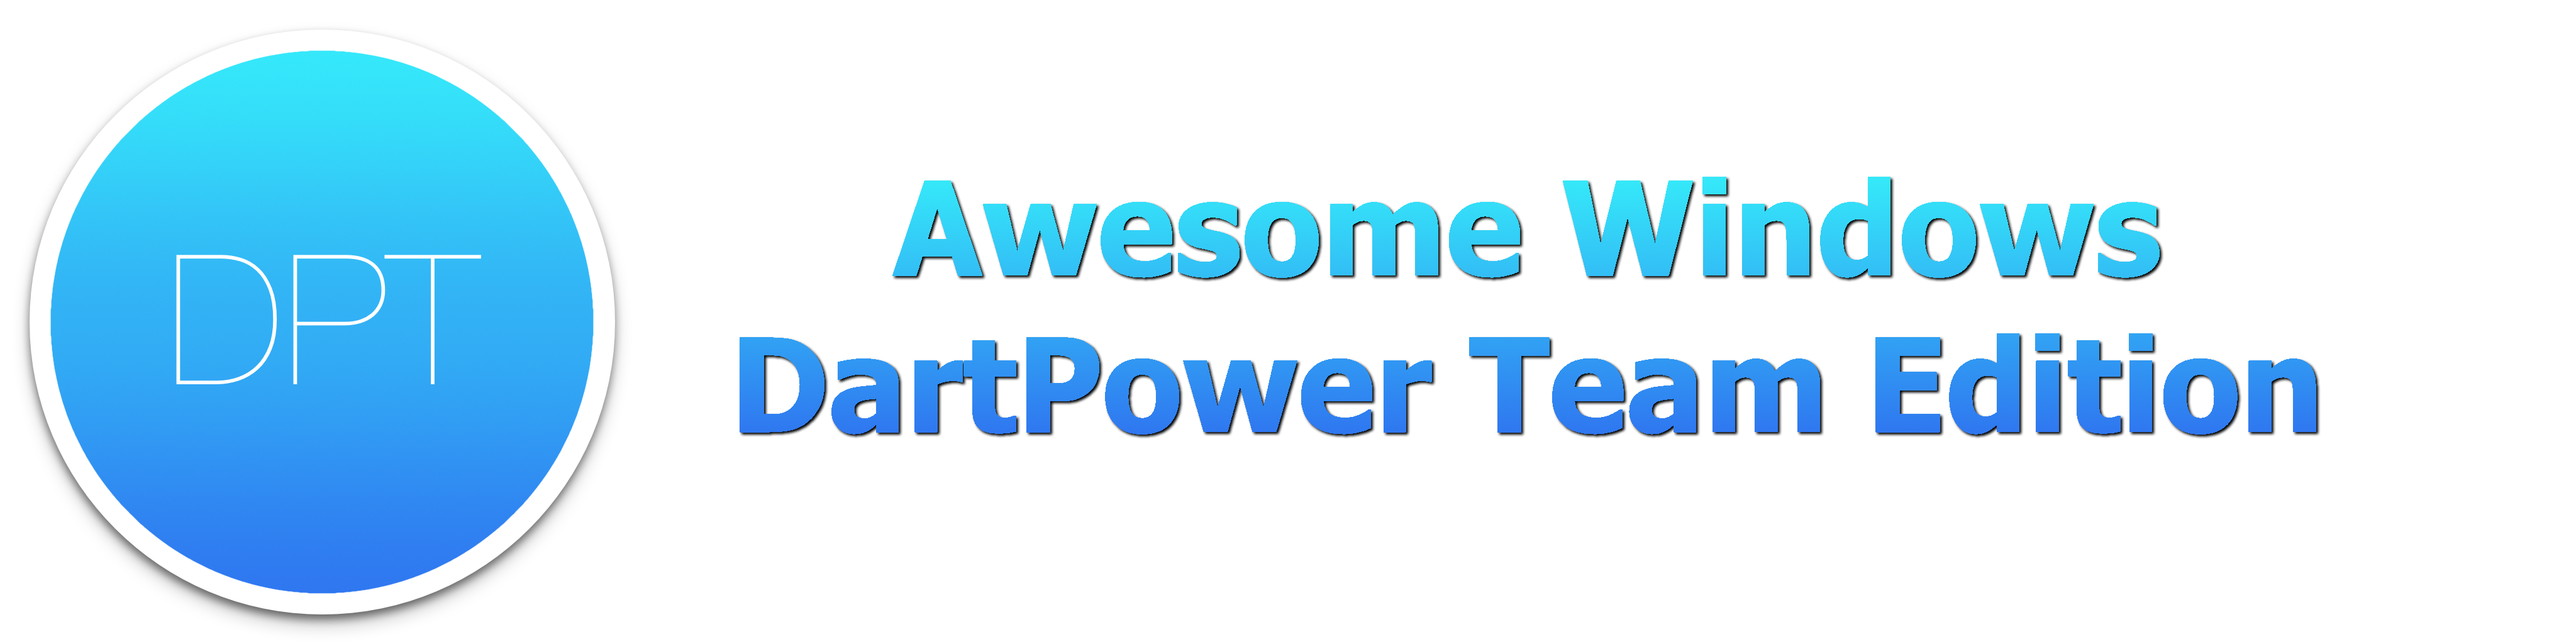 AwesomeDPT-WindowsLTSMS | 💻 Add Windows Store for Windows